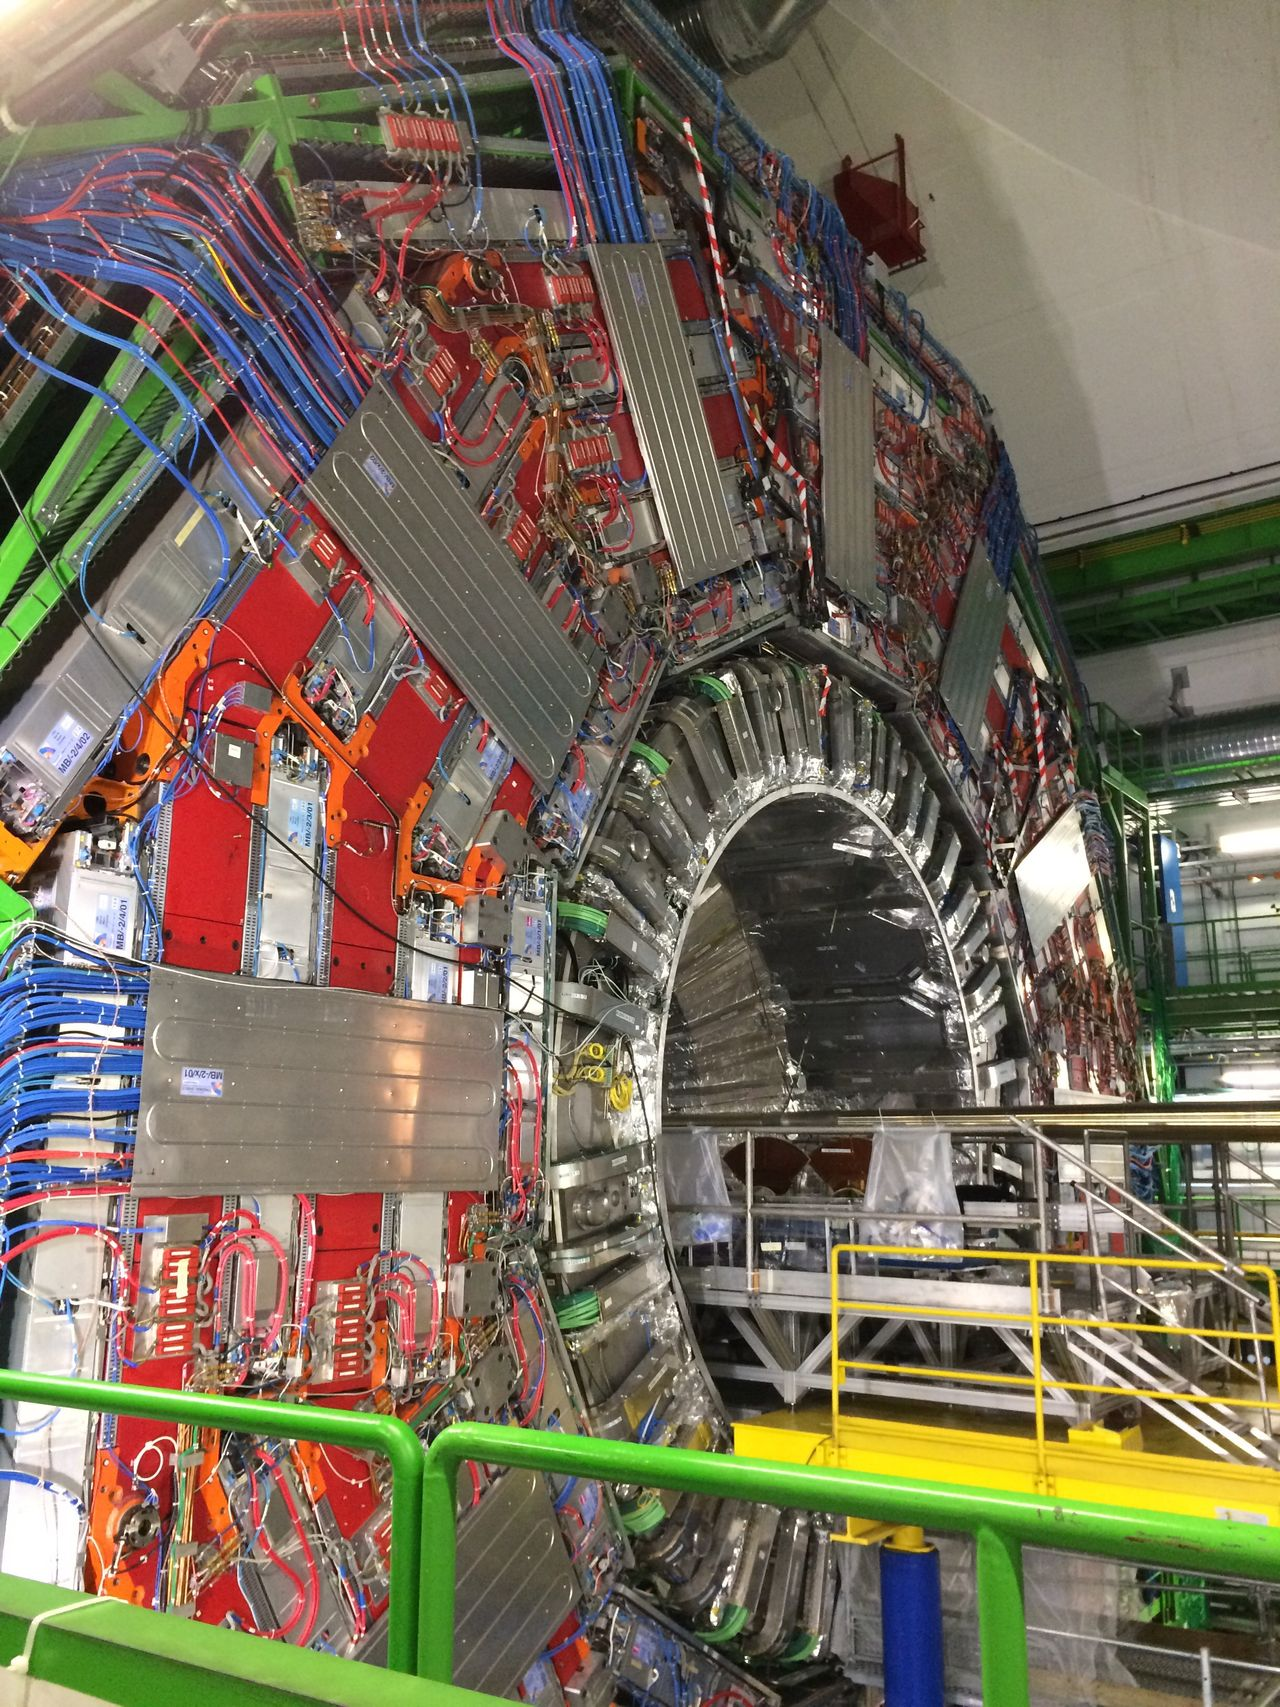 Built Structure Architecture Indoors  No People Day Cern Colider-MT Atomium Phisics LHC Large Hadron Collider Collider